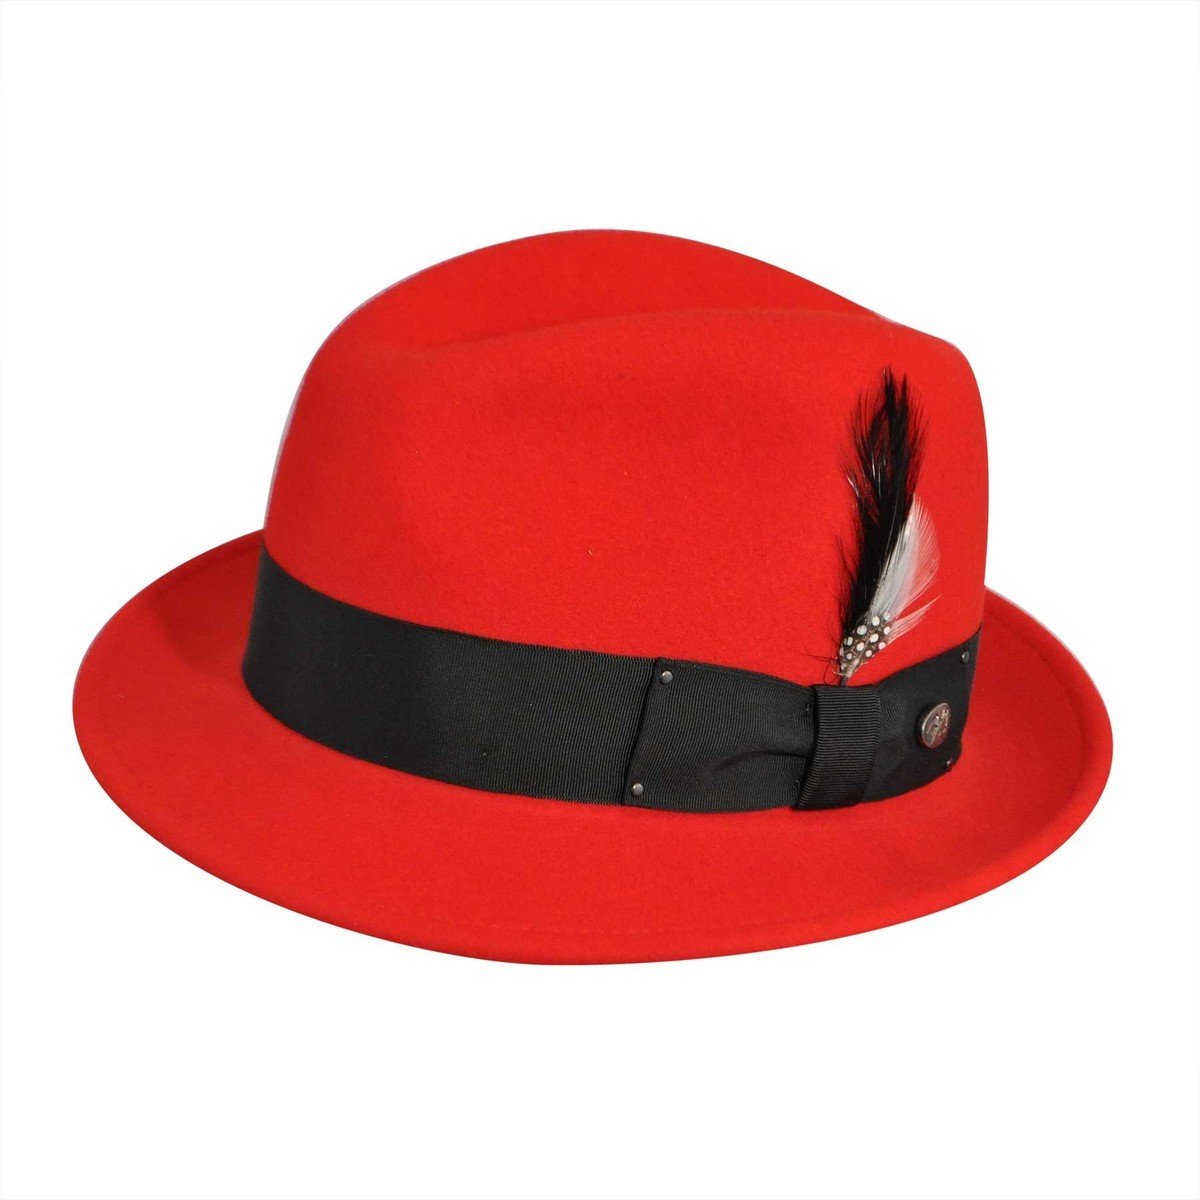 Bailey of Hollywood Tino LiteFeltR Fedora RED フェドラハット 帽子 RED